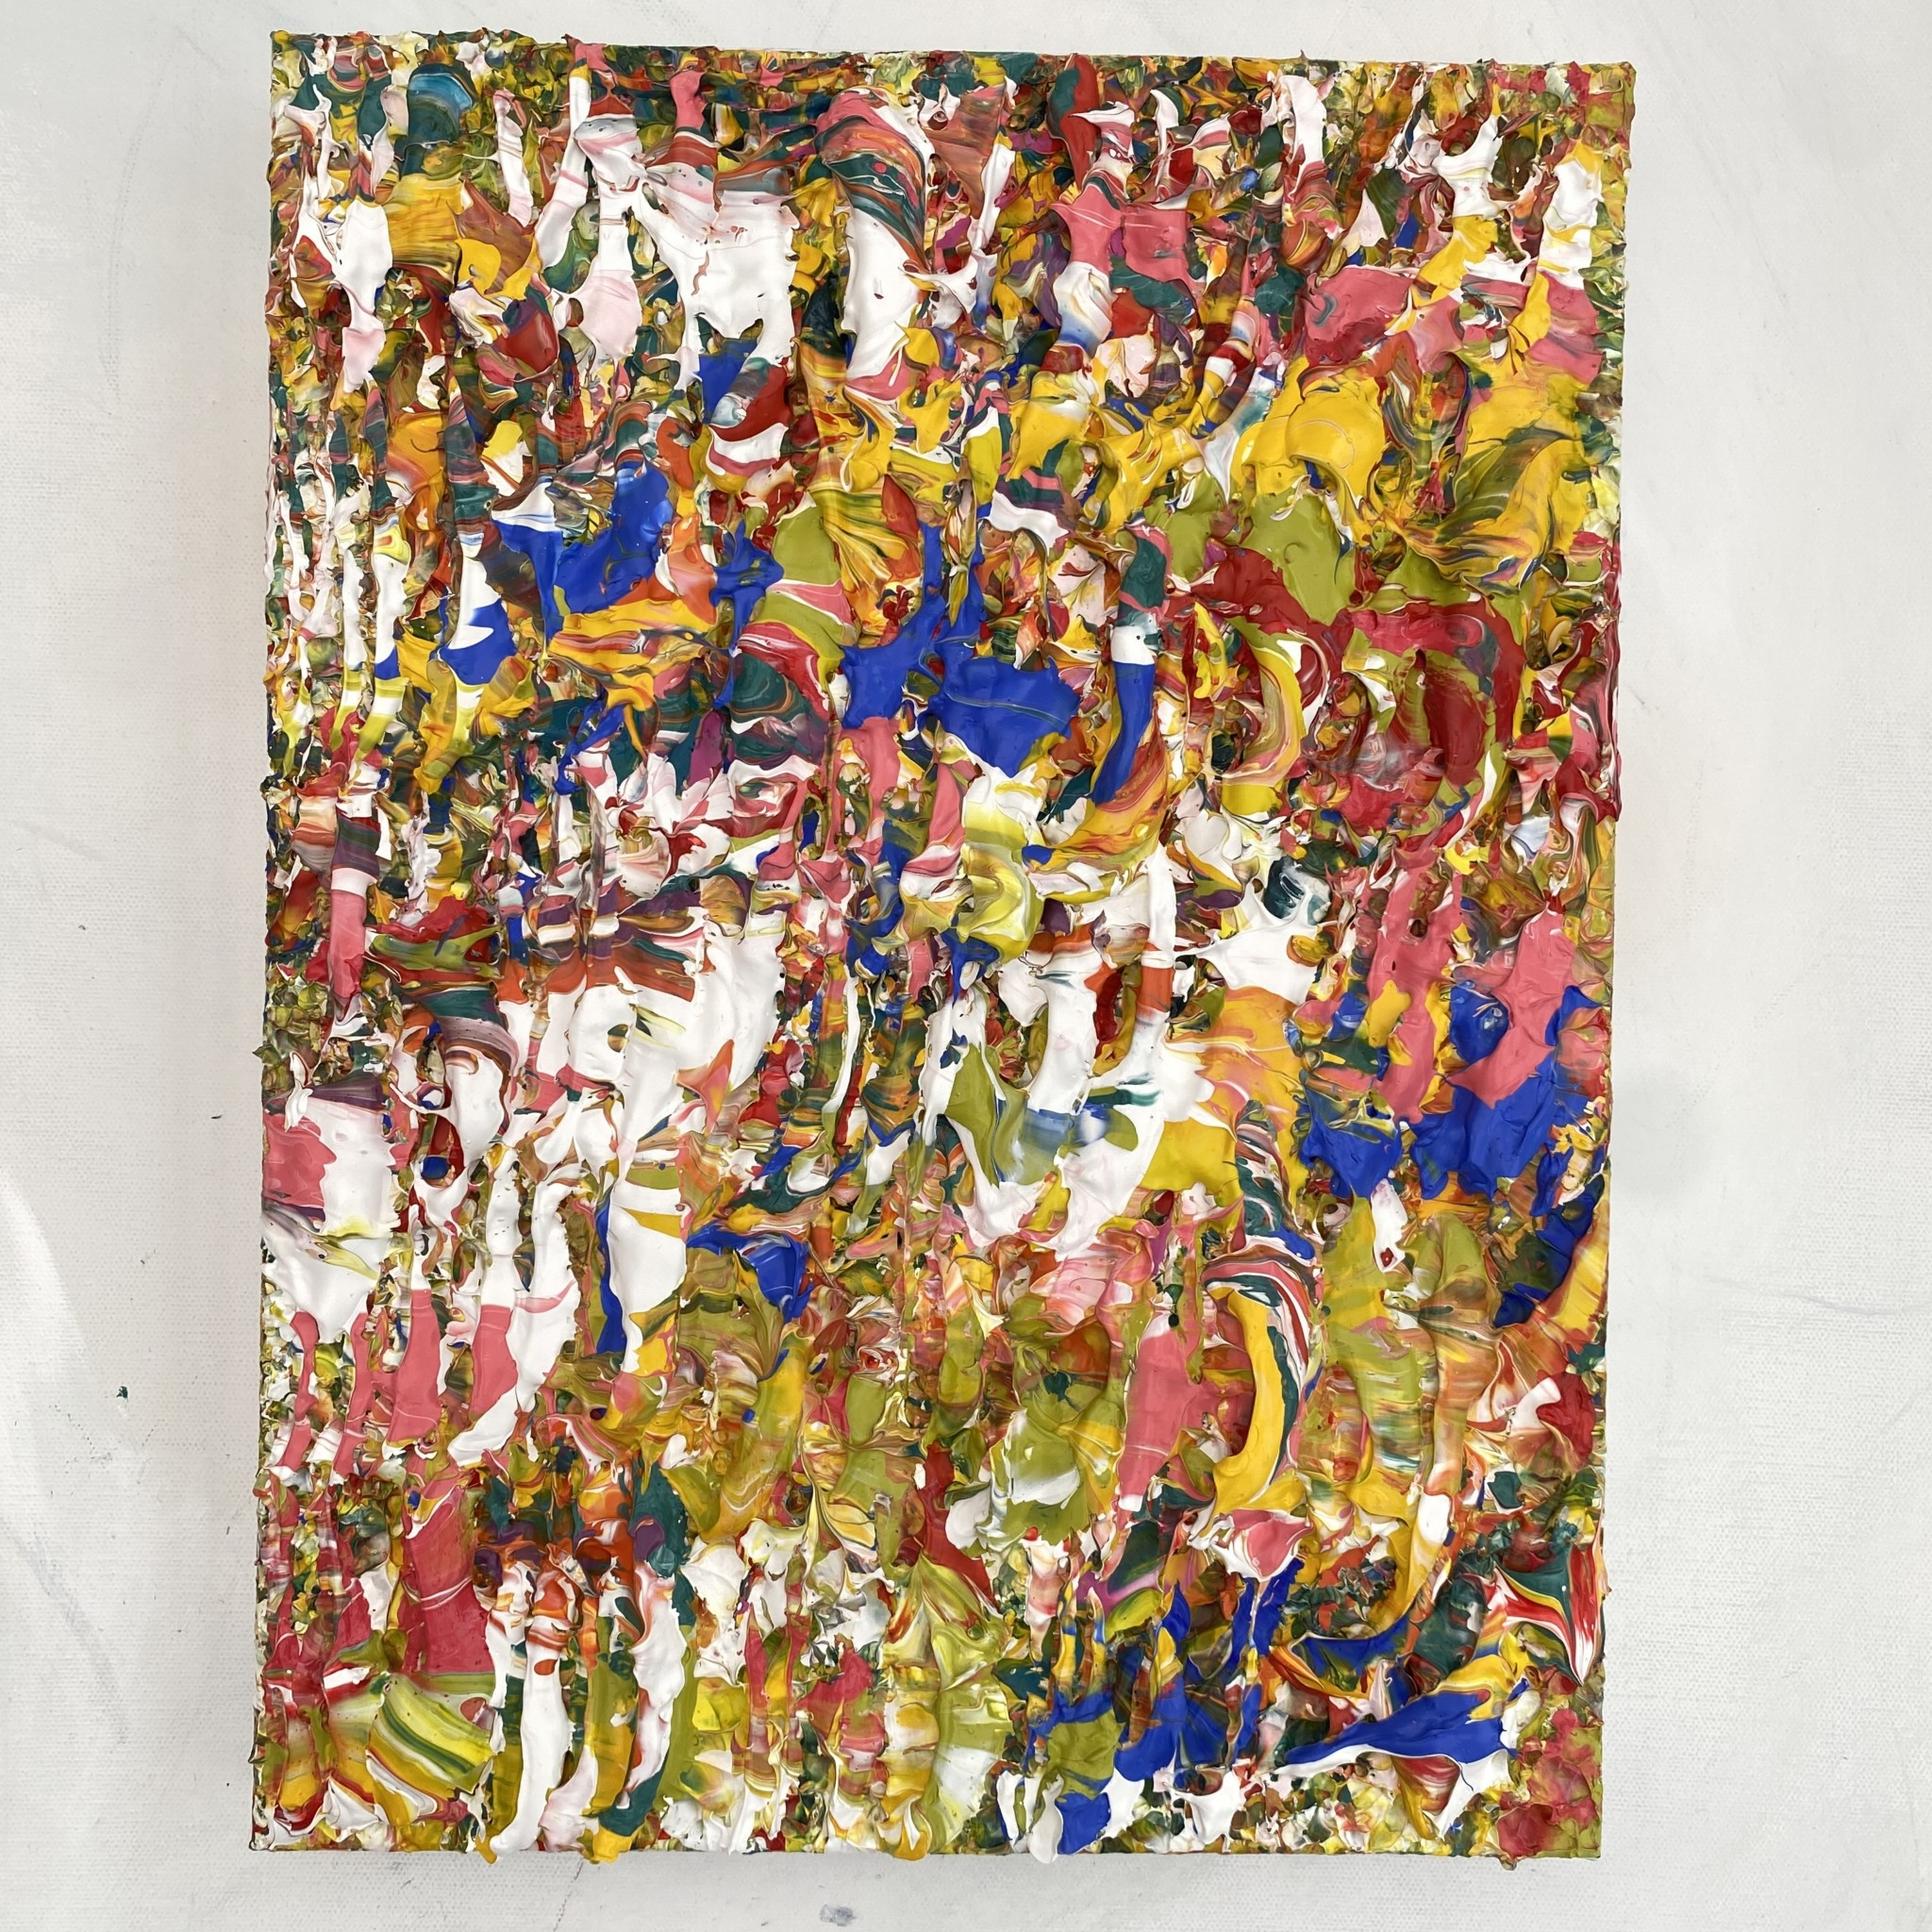 Lush Tropics full view hanging colourful abstract textured impasto painting sculpted on canvas pink green yellow blue inspired by plant life